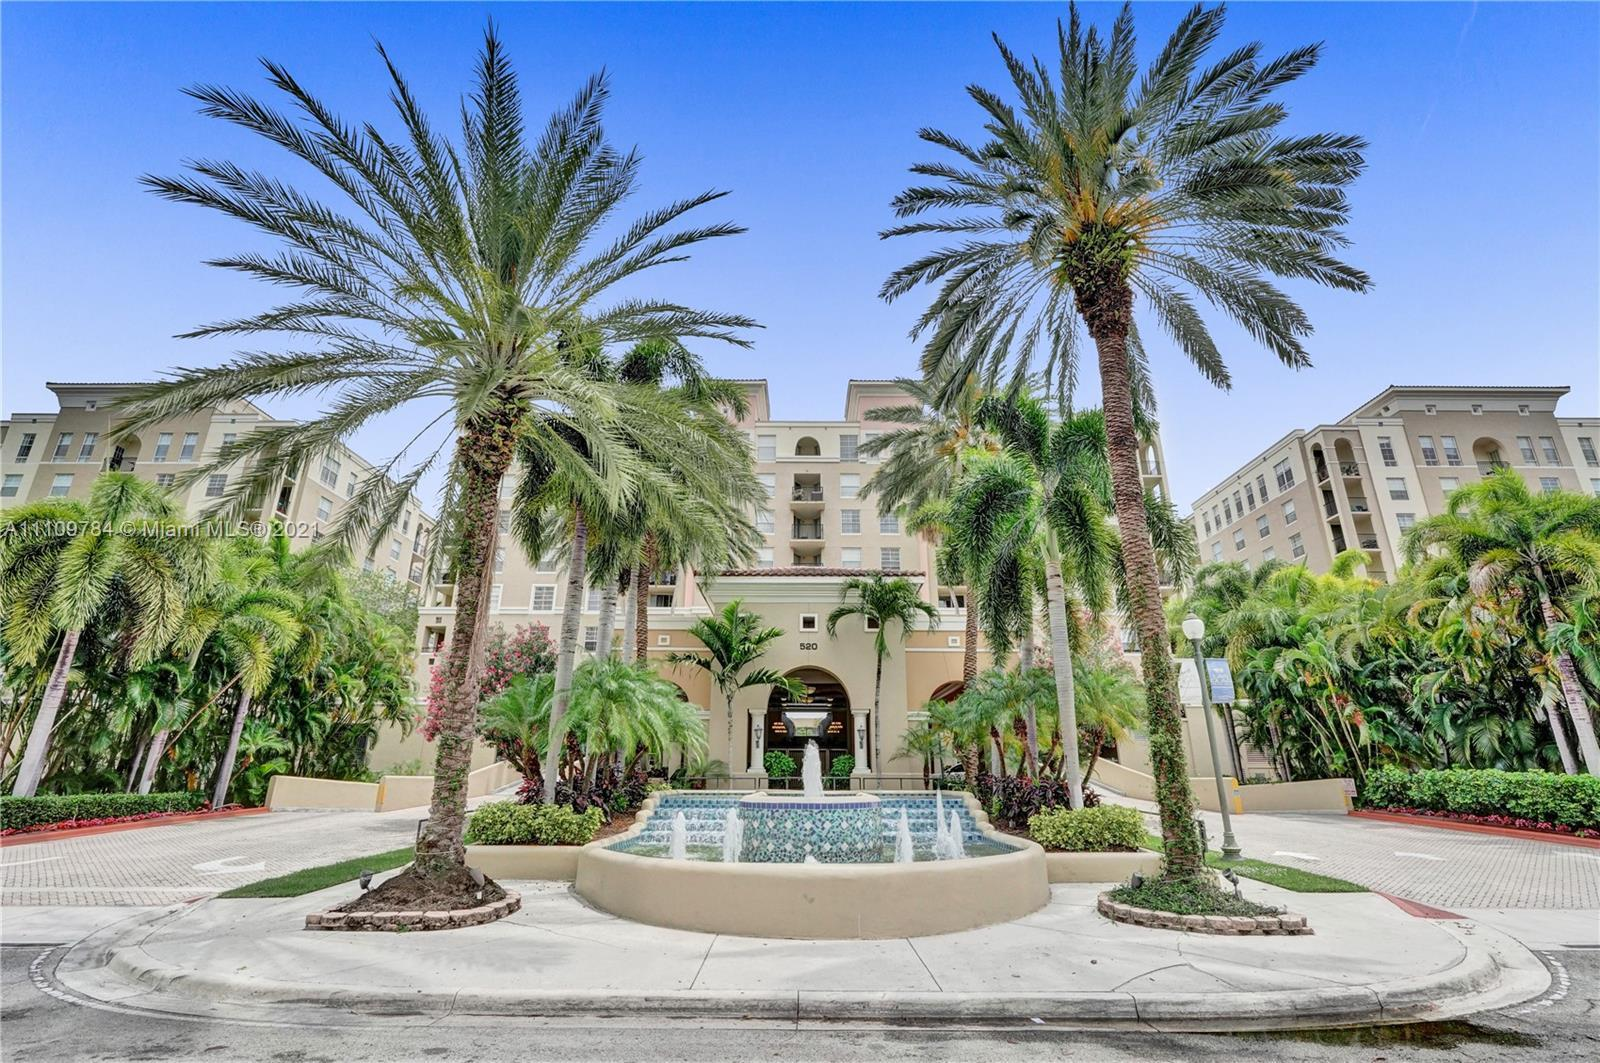 LOCATION LOCATION LOCATION! ENJOY FT LAUDERDALE'S LAS OLAS RIVERFRONT LIFESTYLE IN THE LUXURY RESIDE